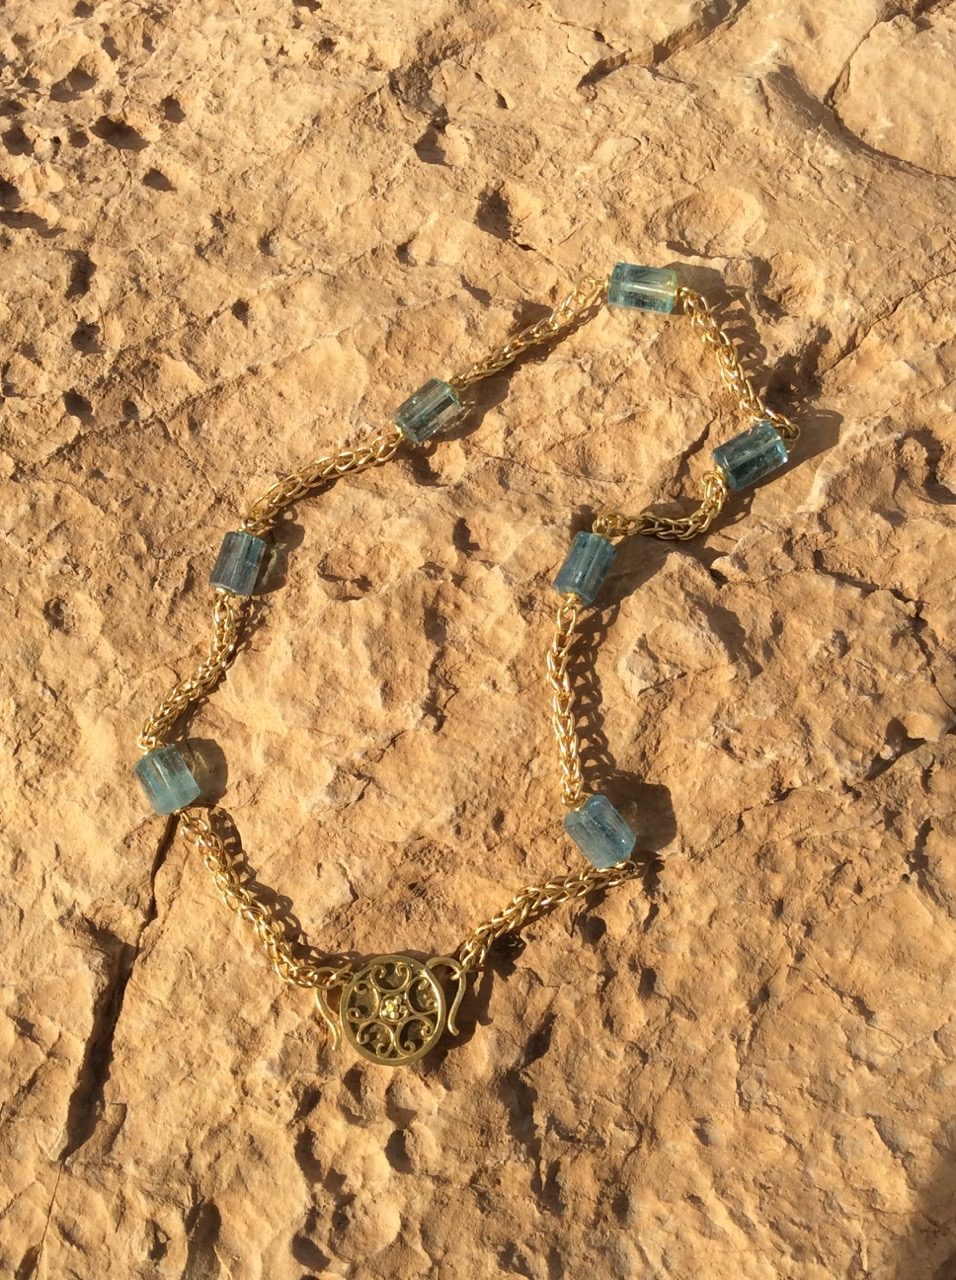 Handcrafted necklace inspired by ancient Rome.  Shot on location at Masada, near the Dead Sea, Israel.  Necklace inquiries:   http://tinyurl.com/hurw4af